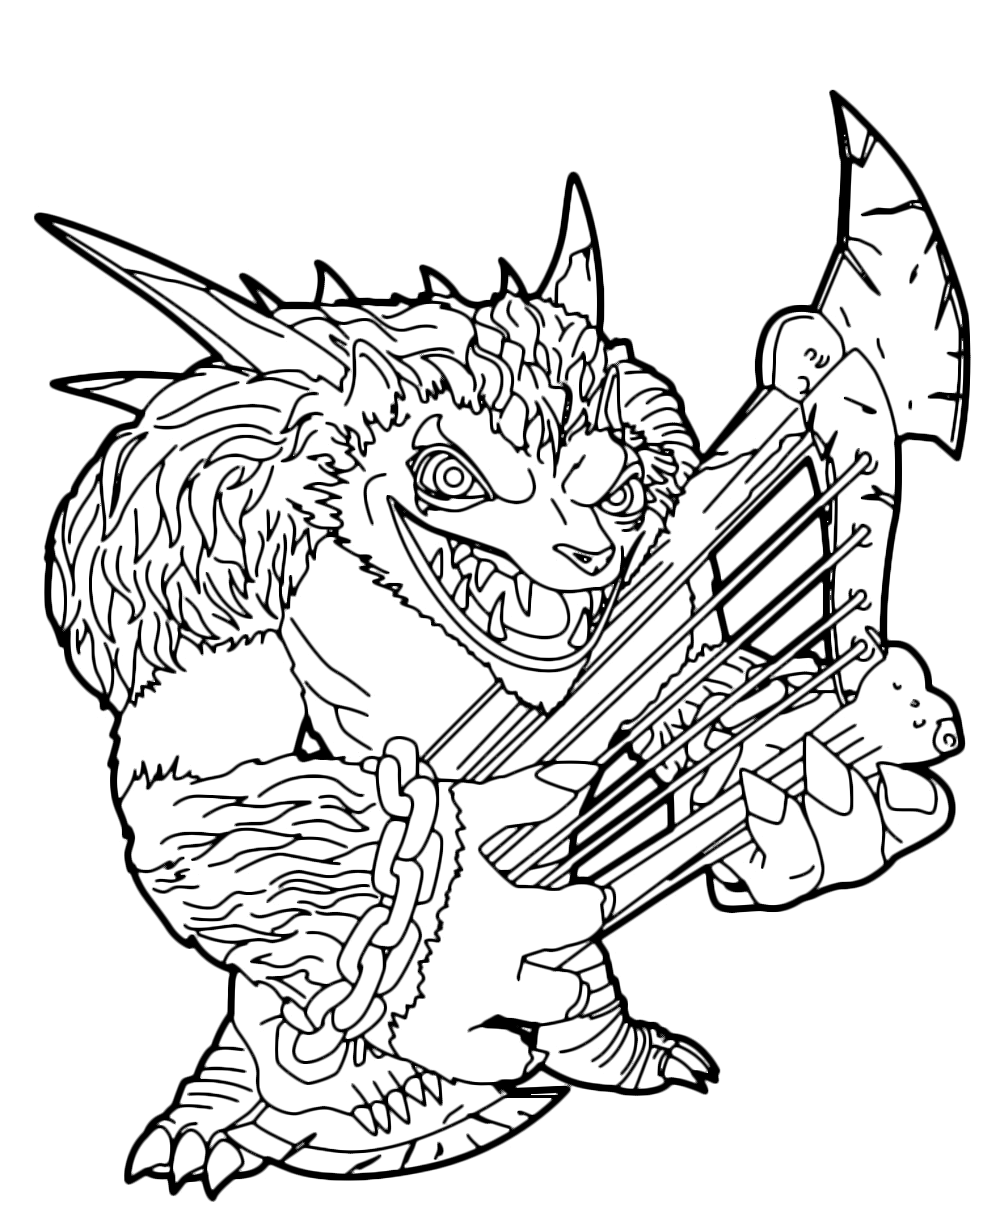 skylanders trap team coloring pages golden queen | Skylanders Coloring Pages Trap Team Sketch Coloring Page